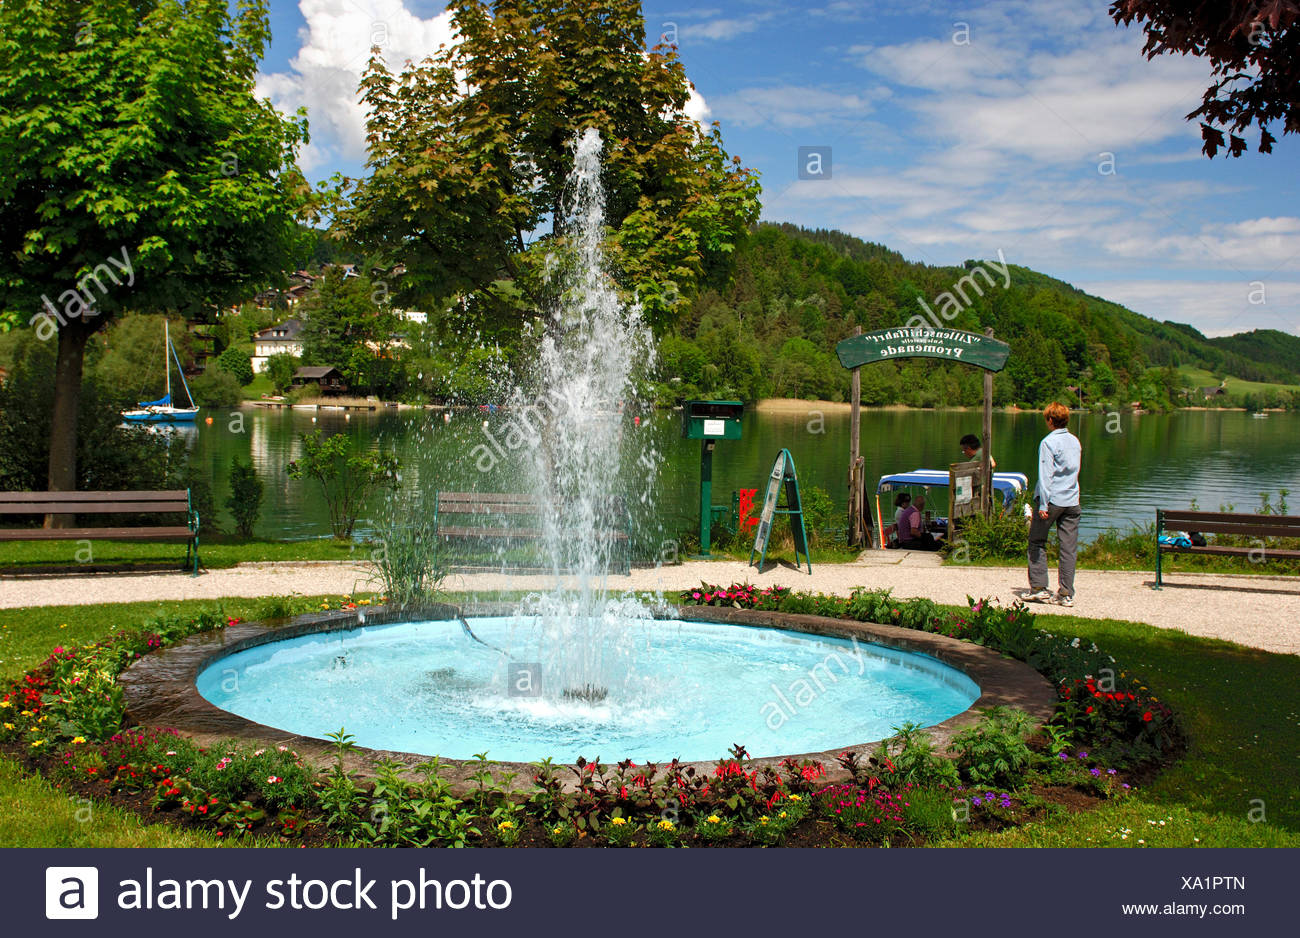 Fountain at the shipping pier on the lakefront promenade, Fuschl am See, Salzkammergut, Austria, Europe - Stock Image